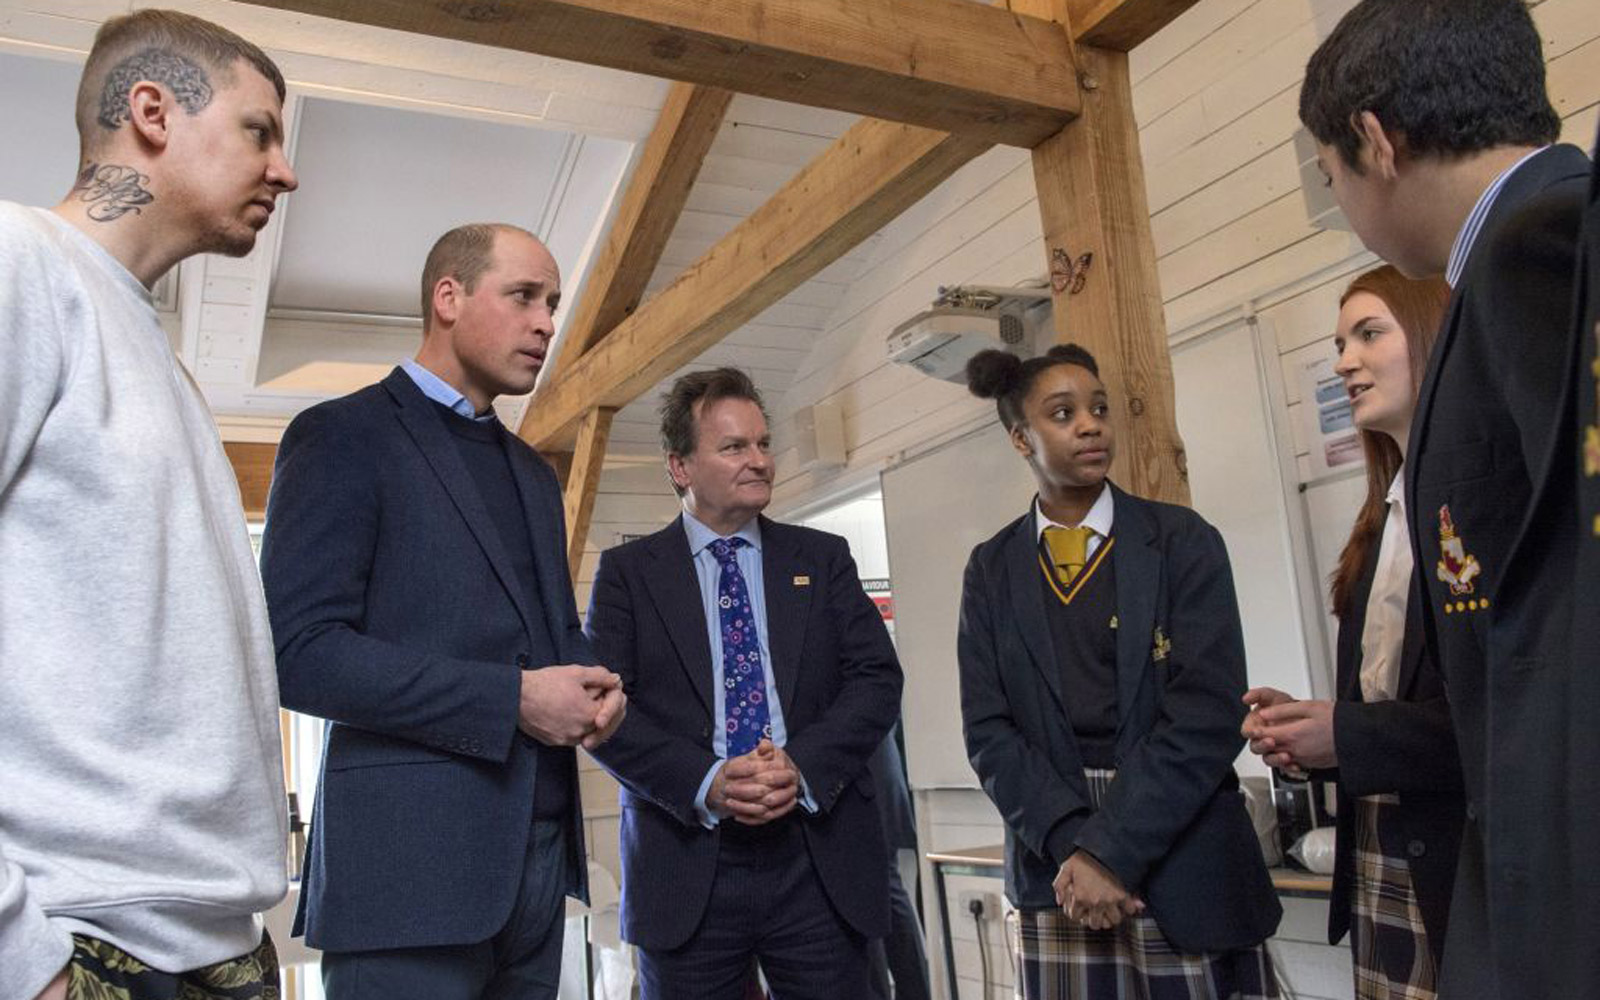 Britain's Prince William, Duke of Cambridge, accompanied by rapper Stephen Manderson aka Professor Green